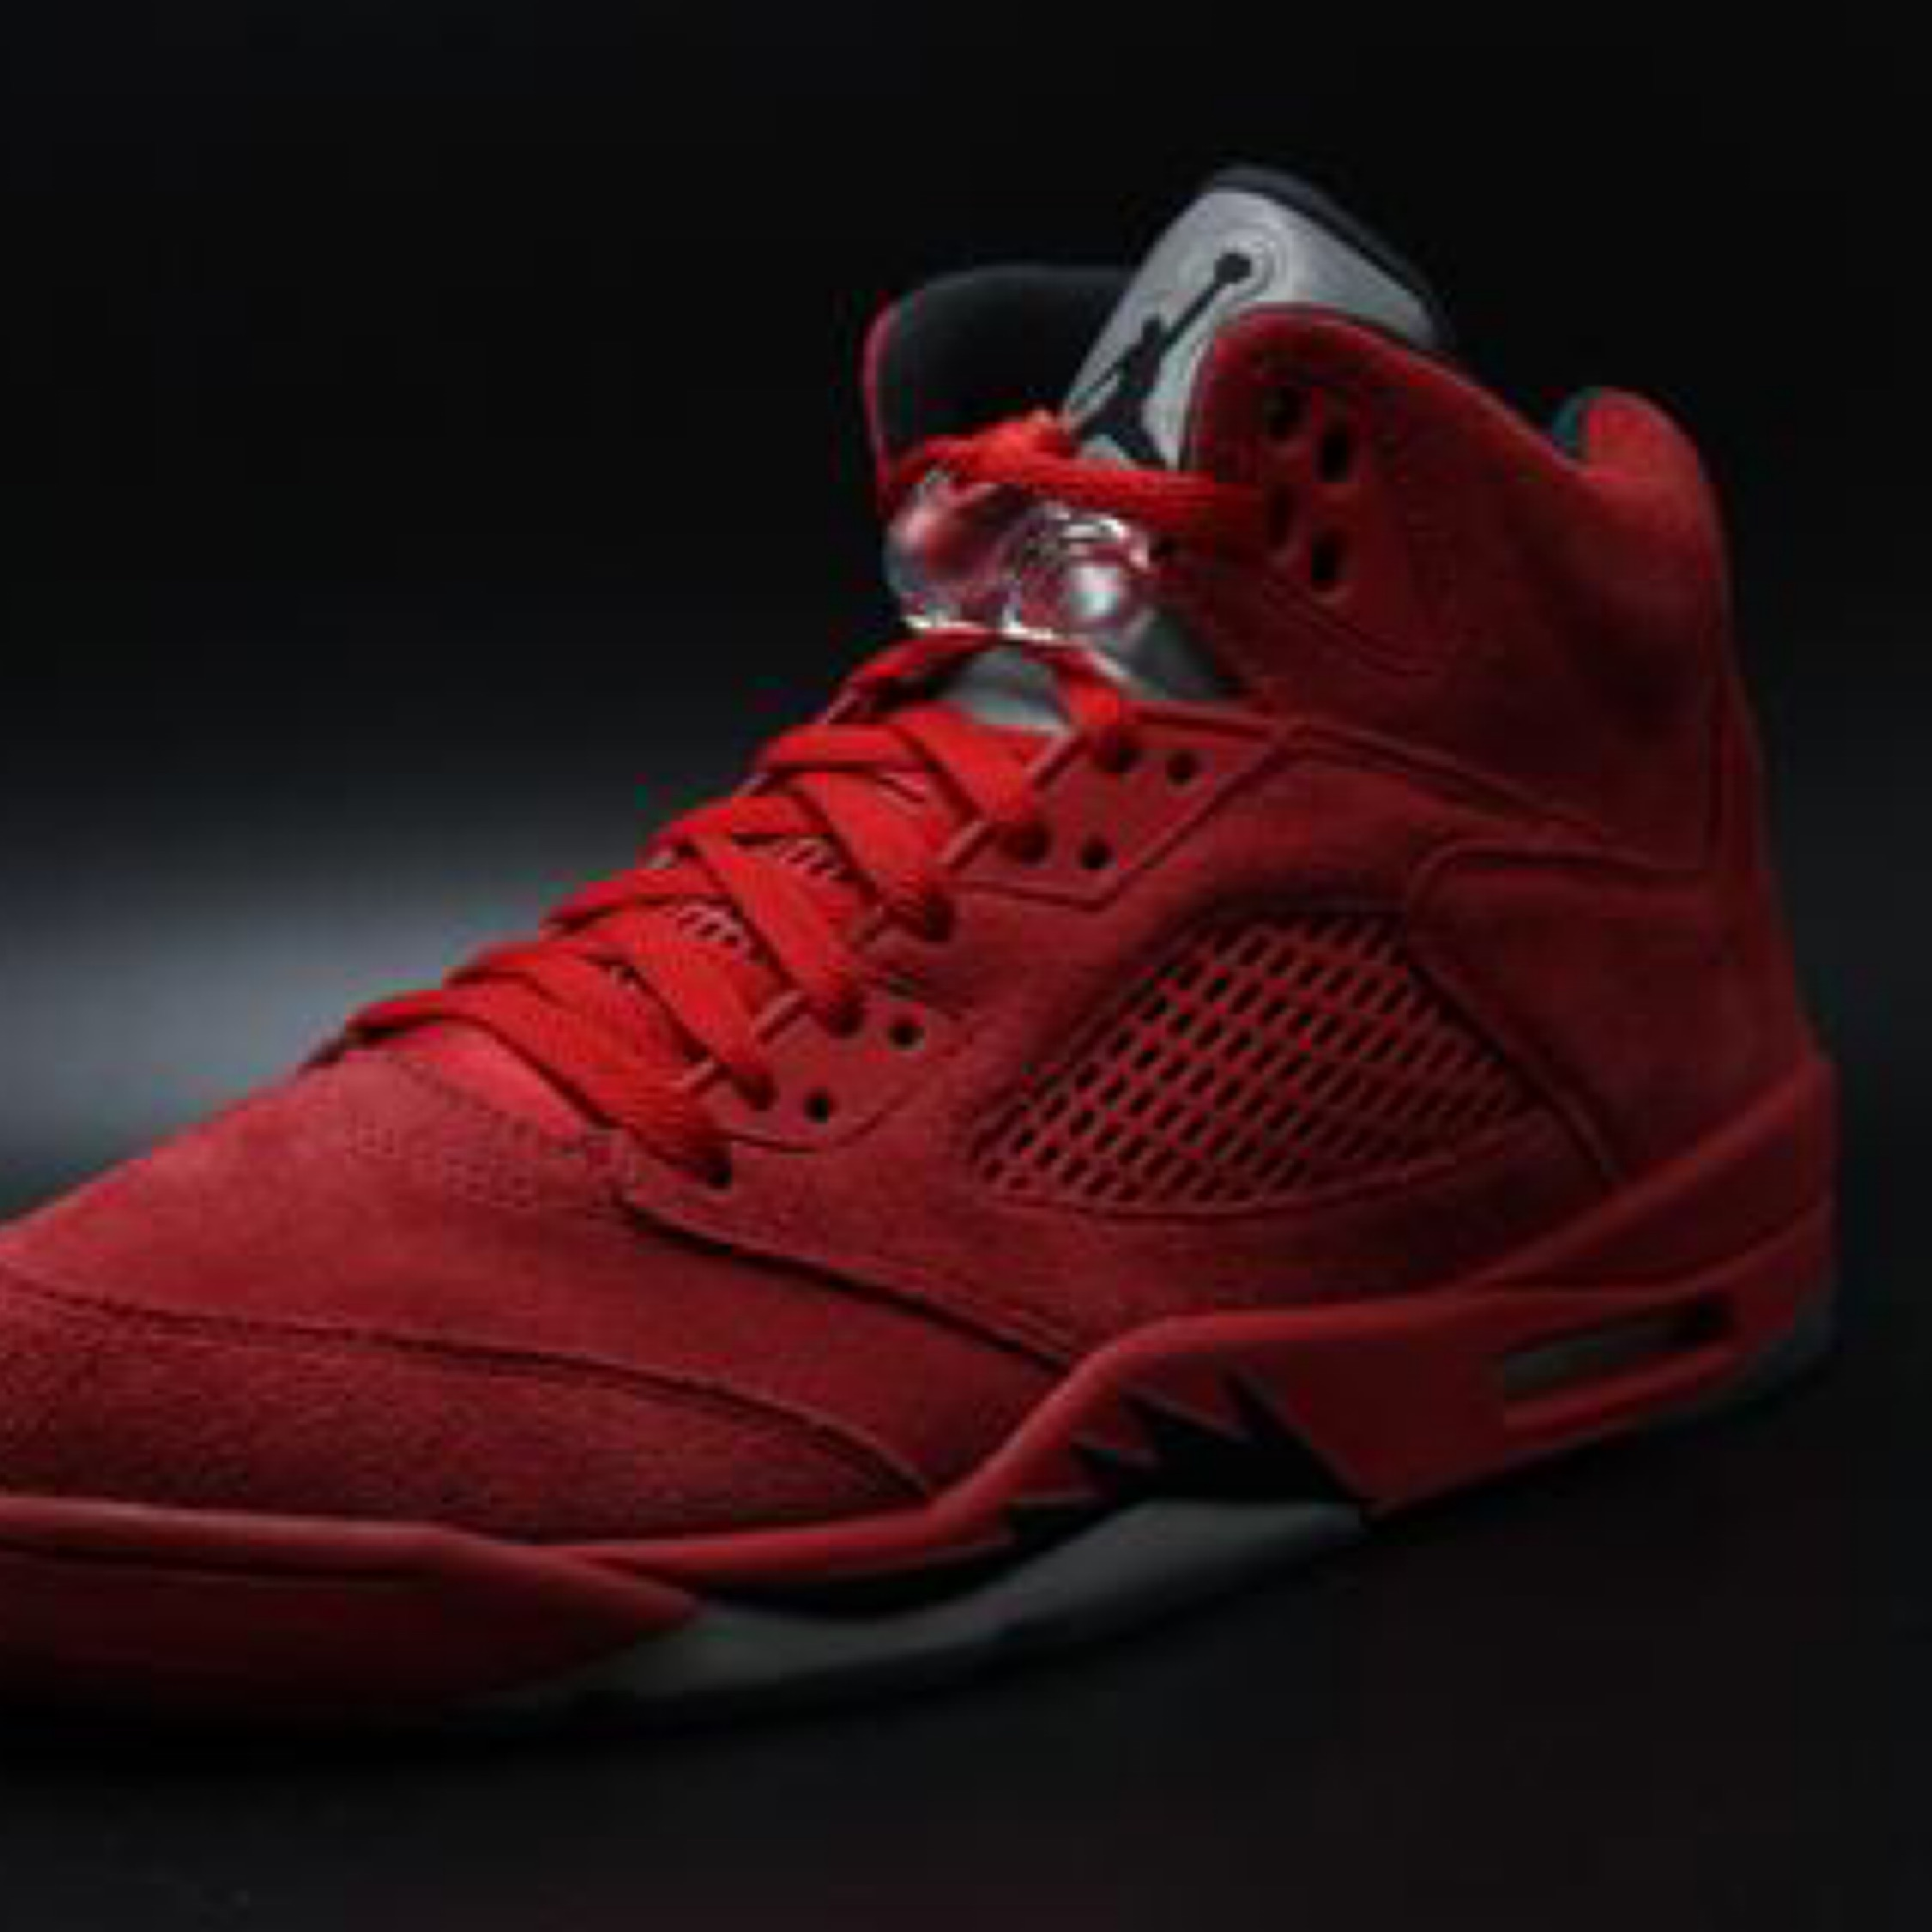 outlet store fc6bf ff6e1 Jordan 5 Red Suede